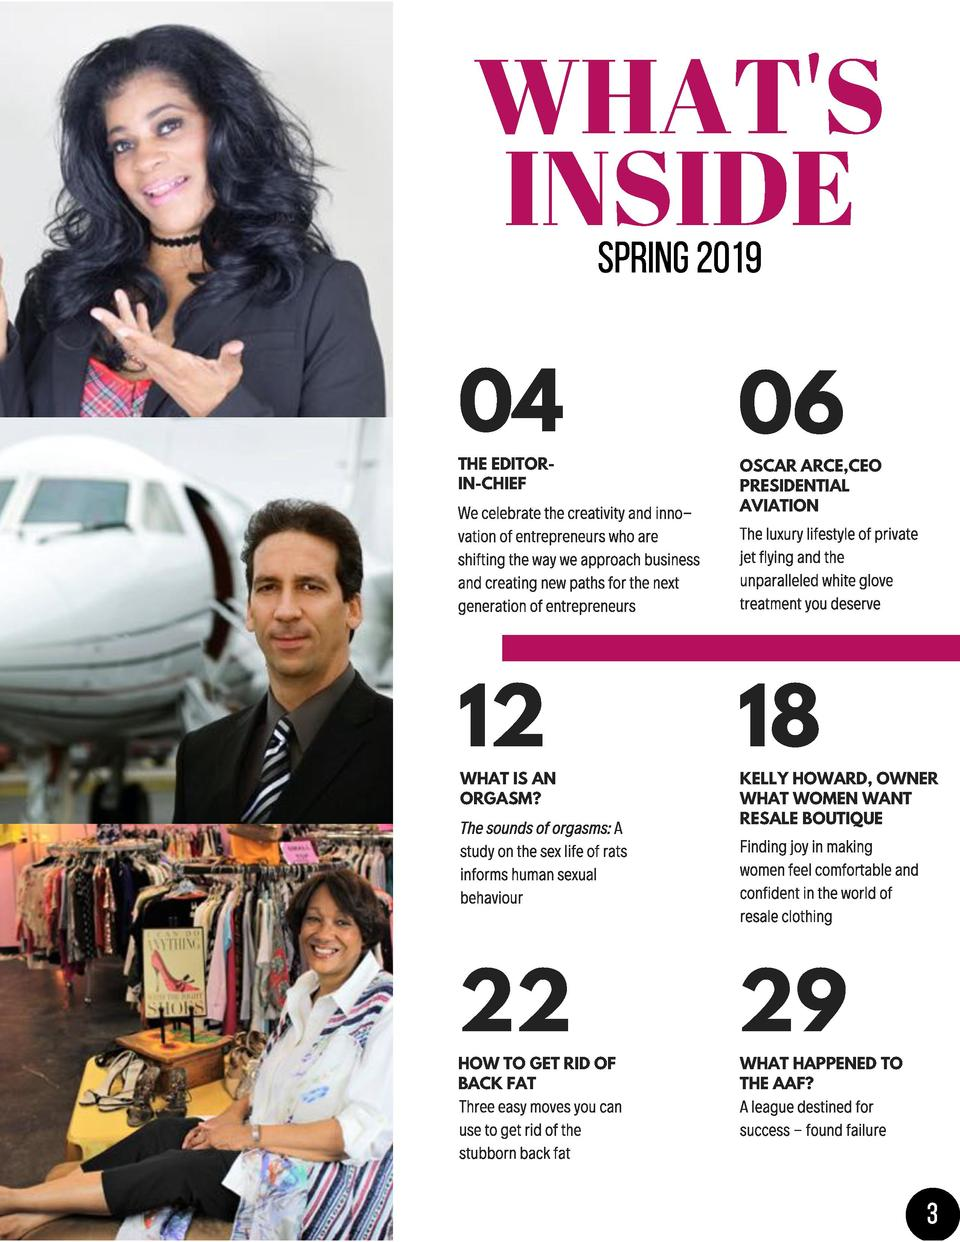 WHAT S INSIDE 04 THE EDITORIN-CHIEF  06  OSCAR ARCE,CEO PRESIDENTIAL AVIATION  12  18  22  29  WHAT IS AN ORGASM   HOW TO ...